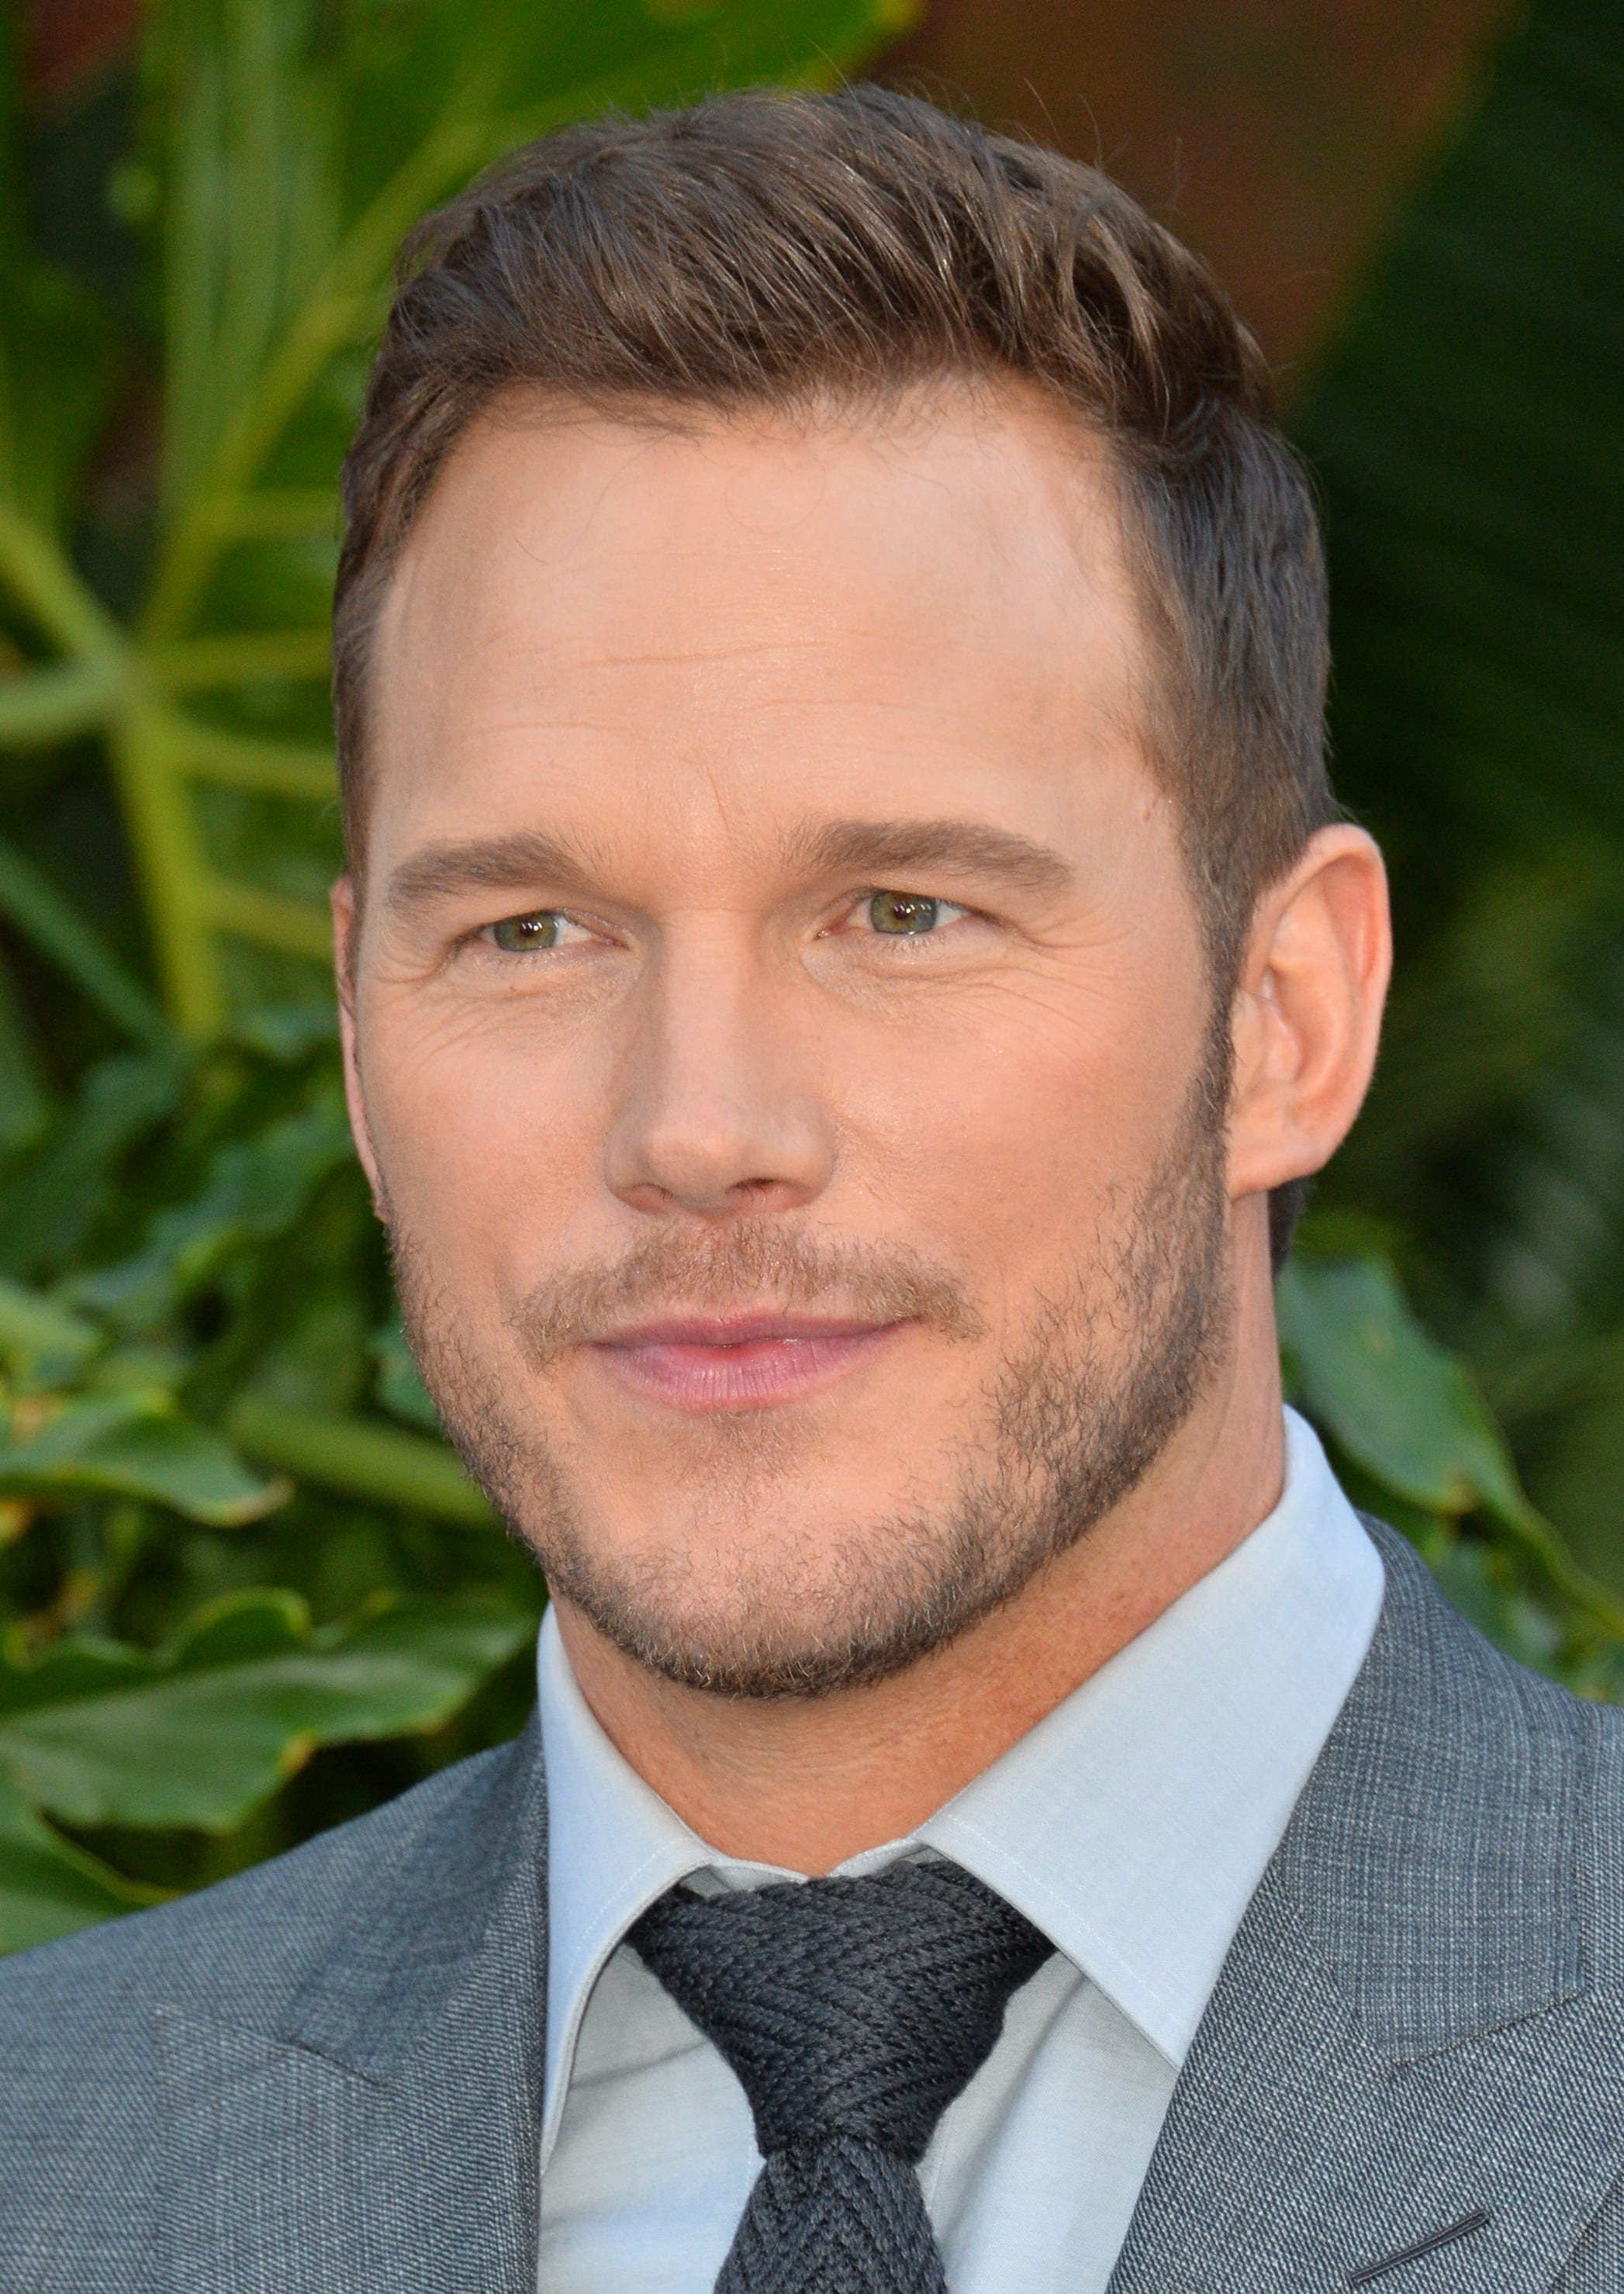 Chris Pratt's Ivy League